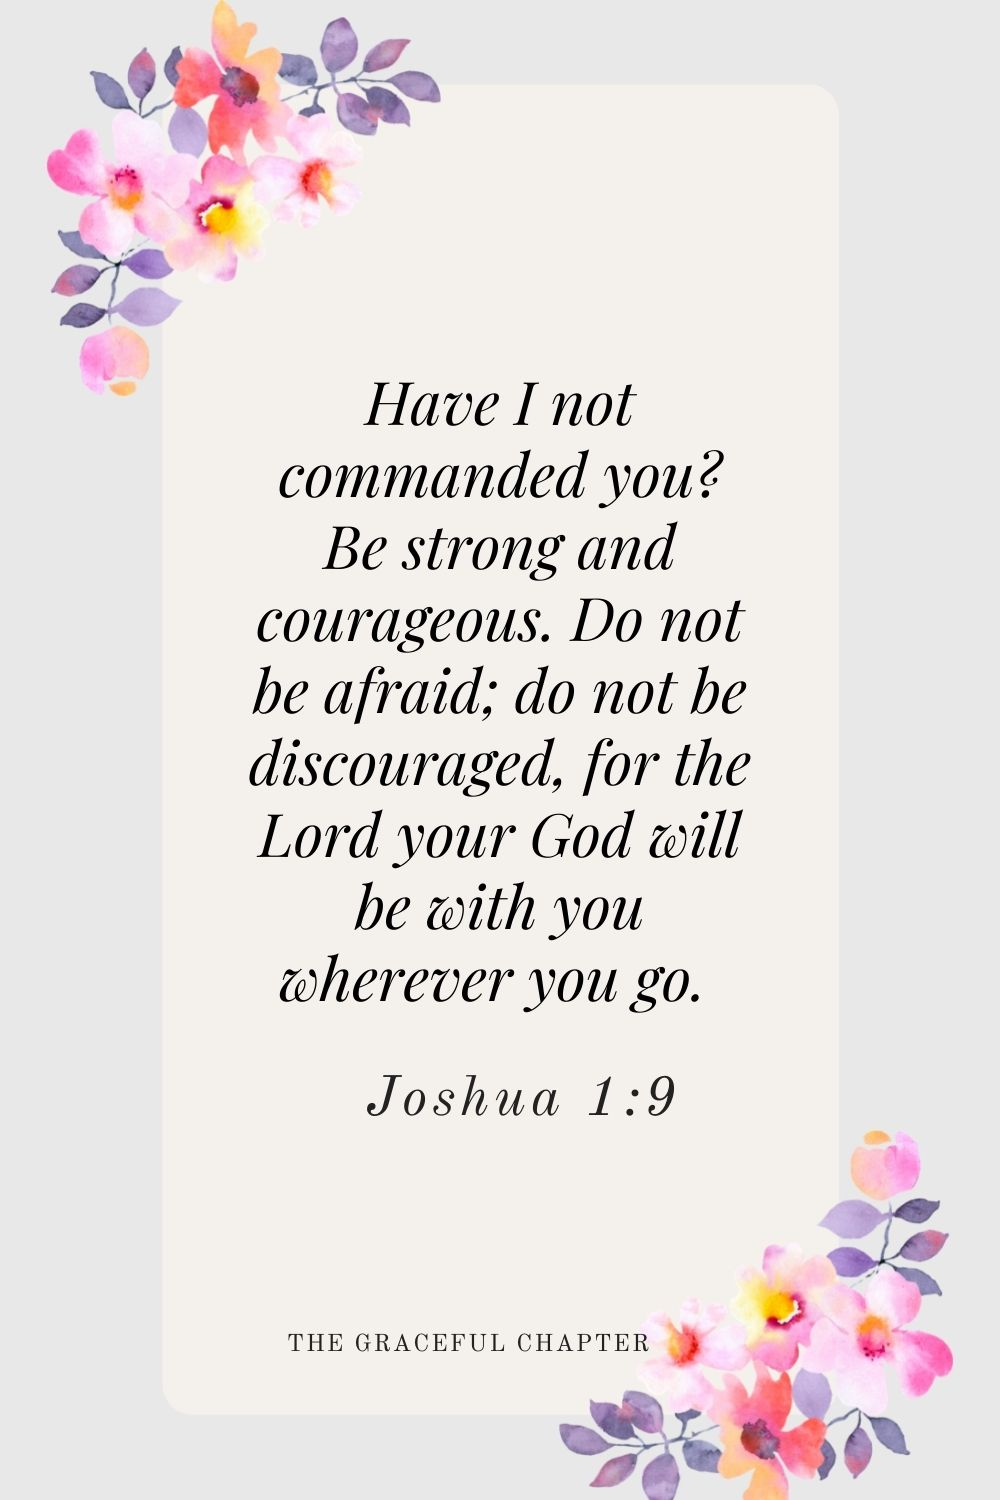 Have I not commanded you? Be strong and courageous. Do not be afraid; do not be discouraged, for the Lord your God will be with you wherever you go.  Joshua 1:9